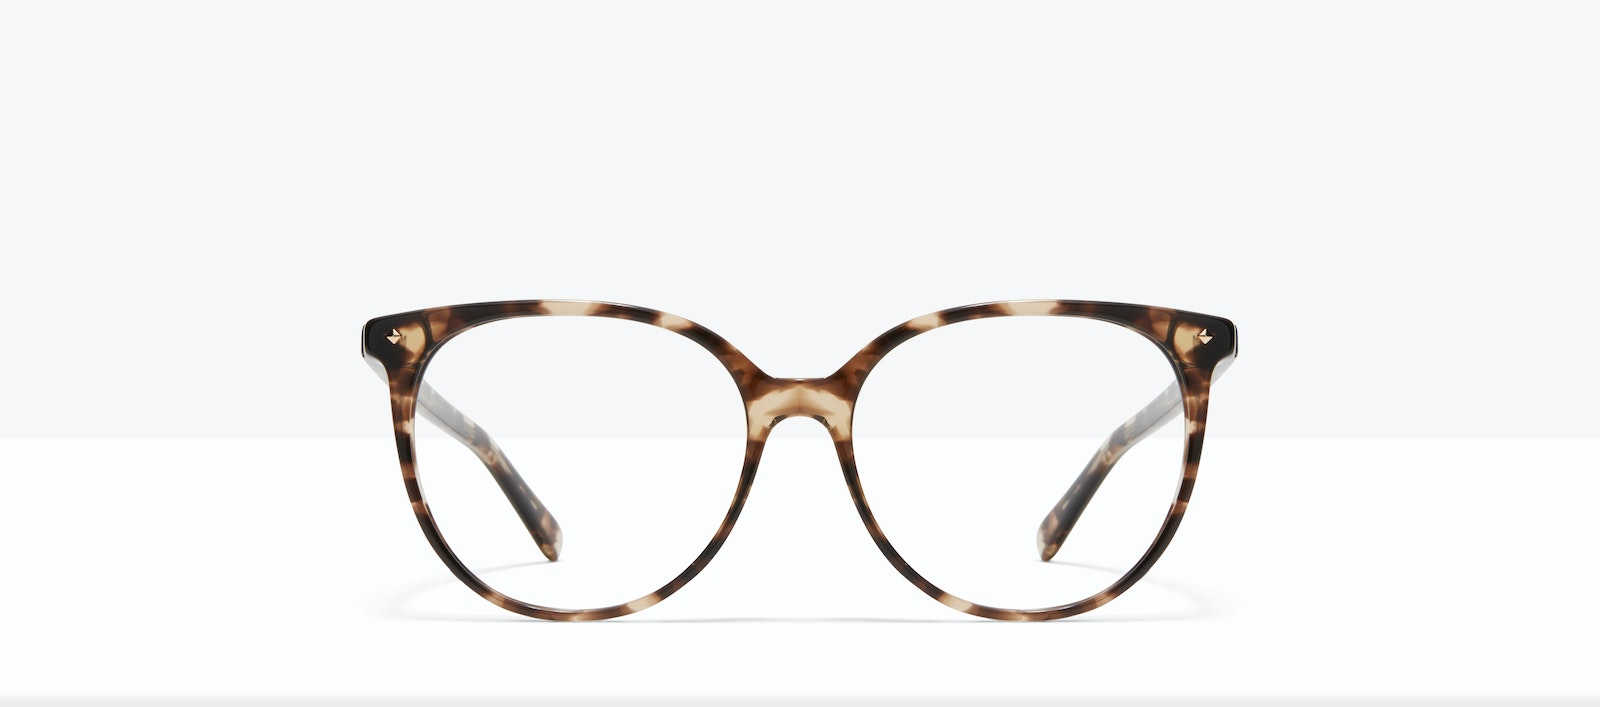 Affordable Fashion Glasses Round Eyeglasses Women Area S Leopard Front